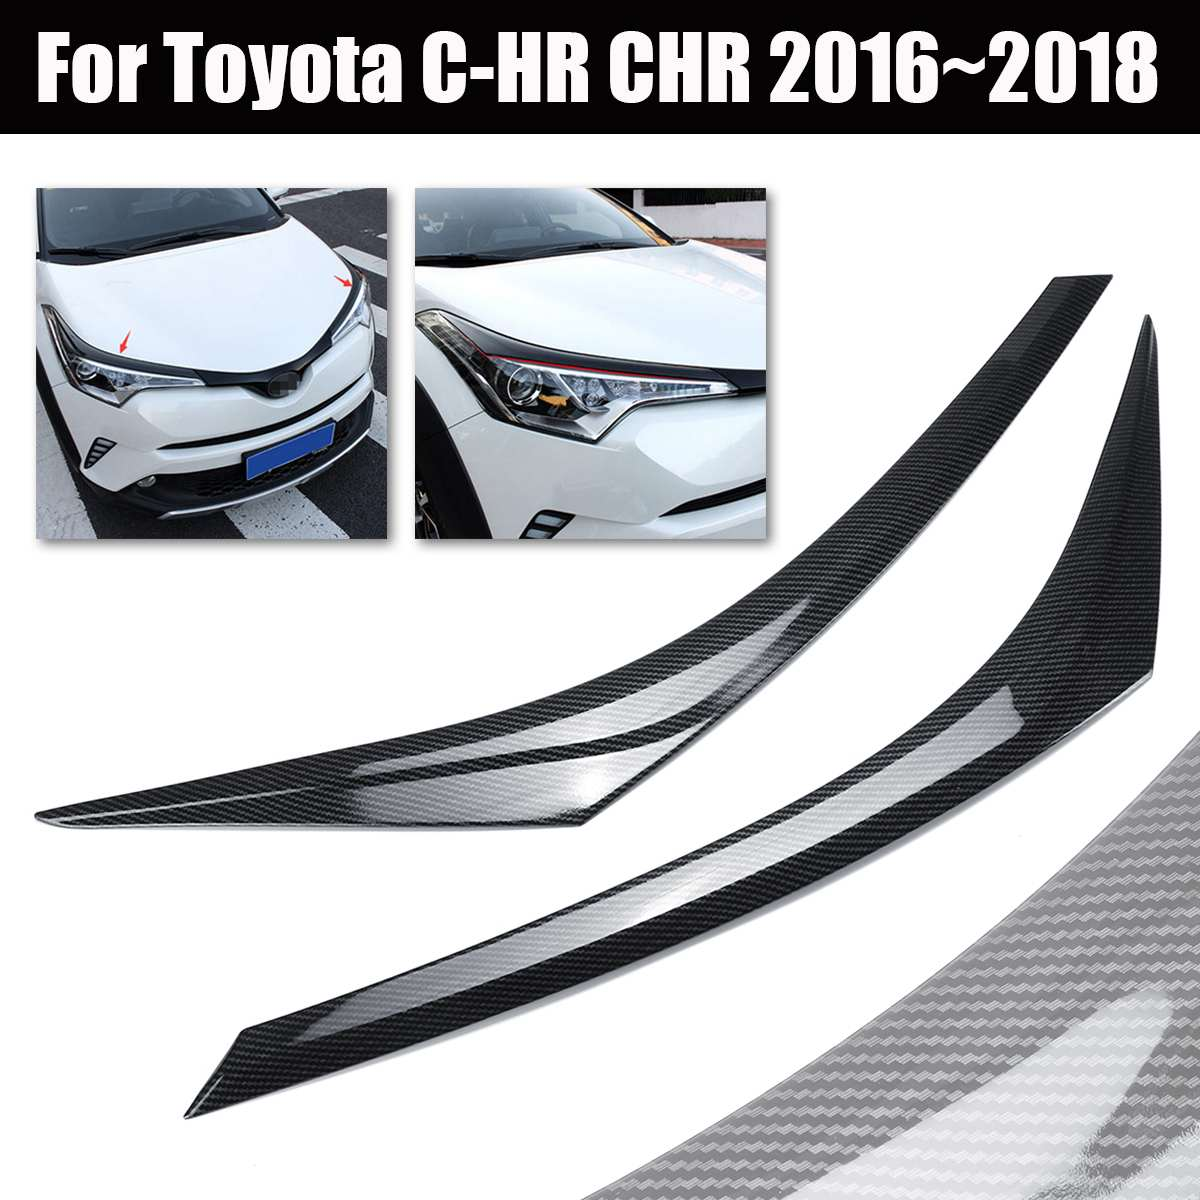 Carbon Fiber Style Front Headlight Cover Trim for Toyota C-HR CHR 2016~2018 ABS Black Auto Head Lamp CoverCarbon Fiber Style Front Headlight Cover Trim for Toyota C-HR CHR 2016~2018 ABS Black Auto Head Lamp Cover